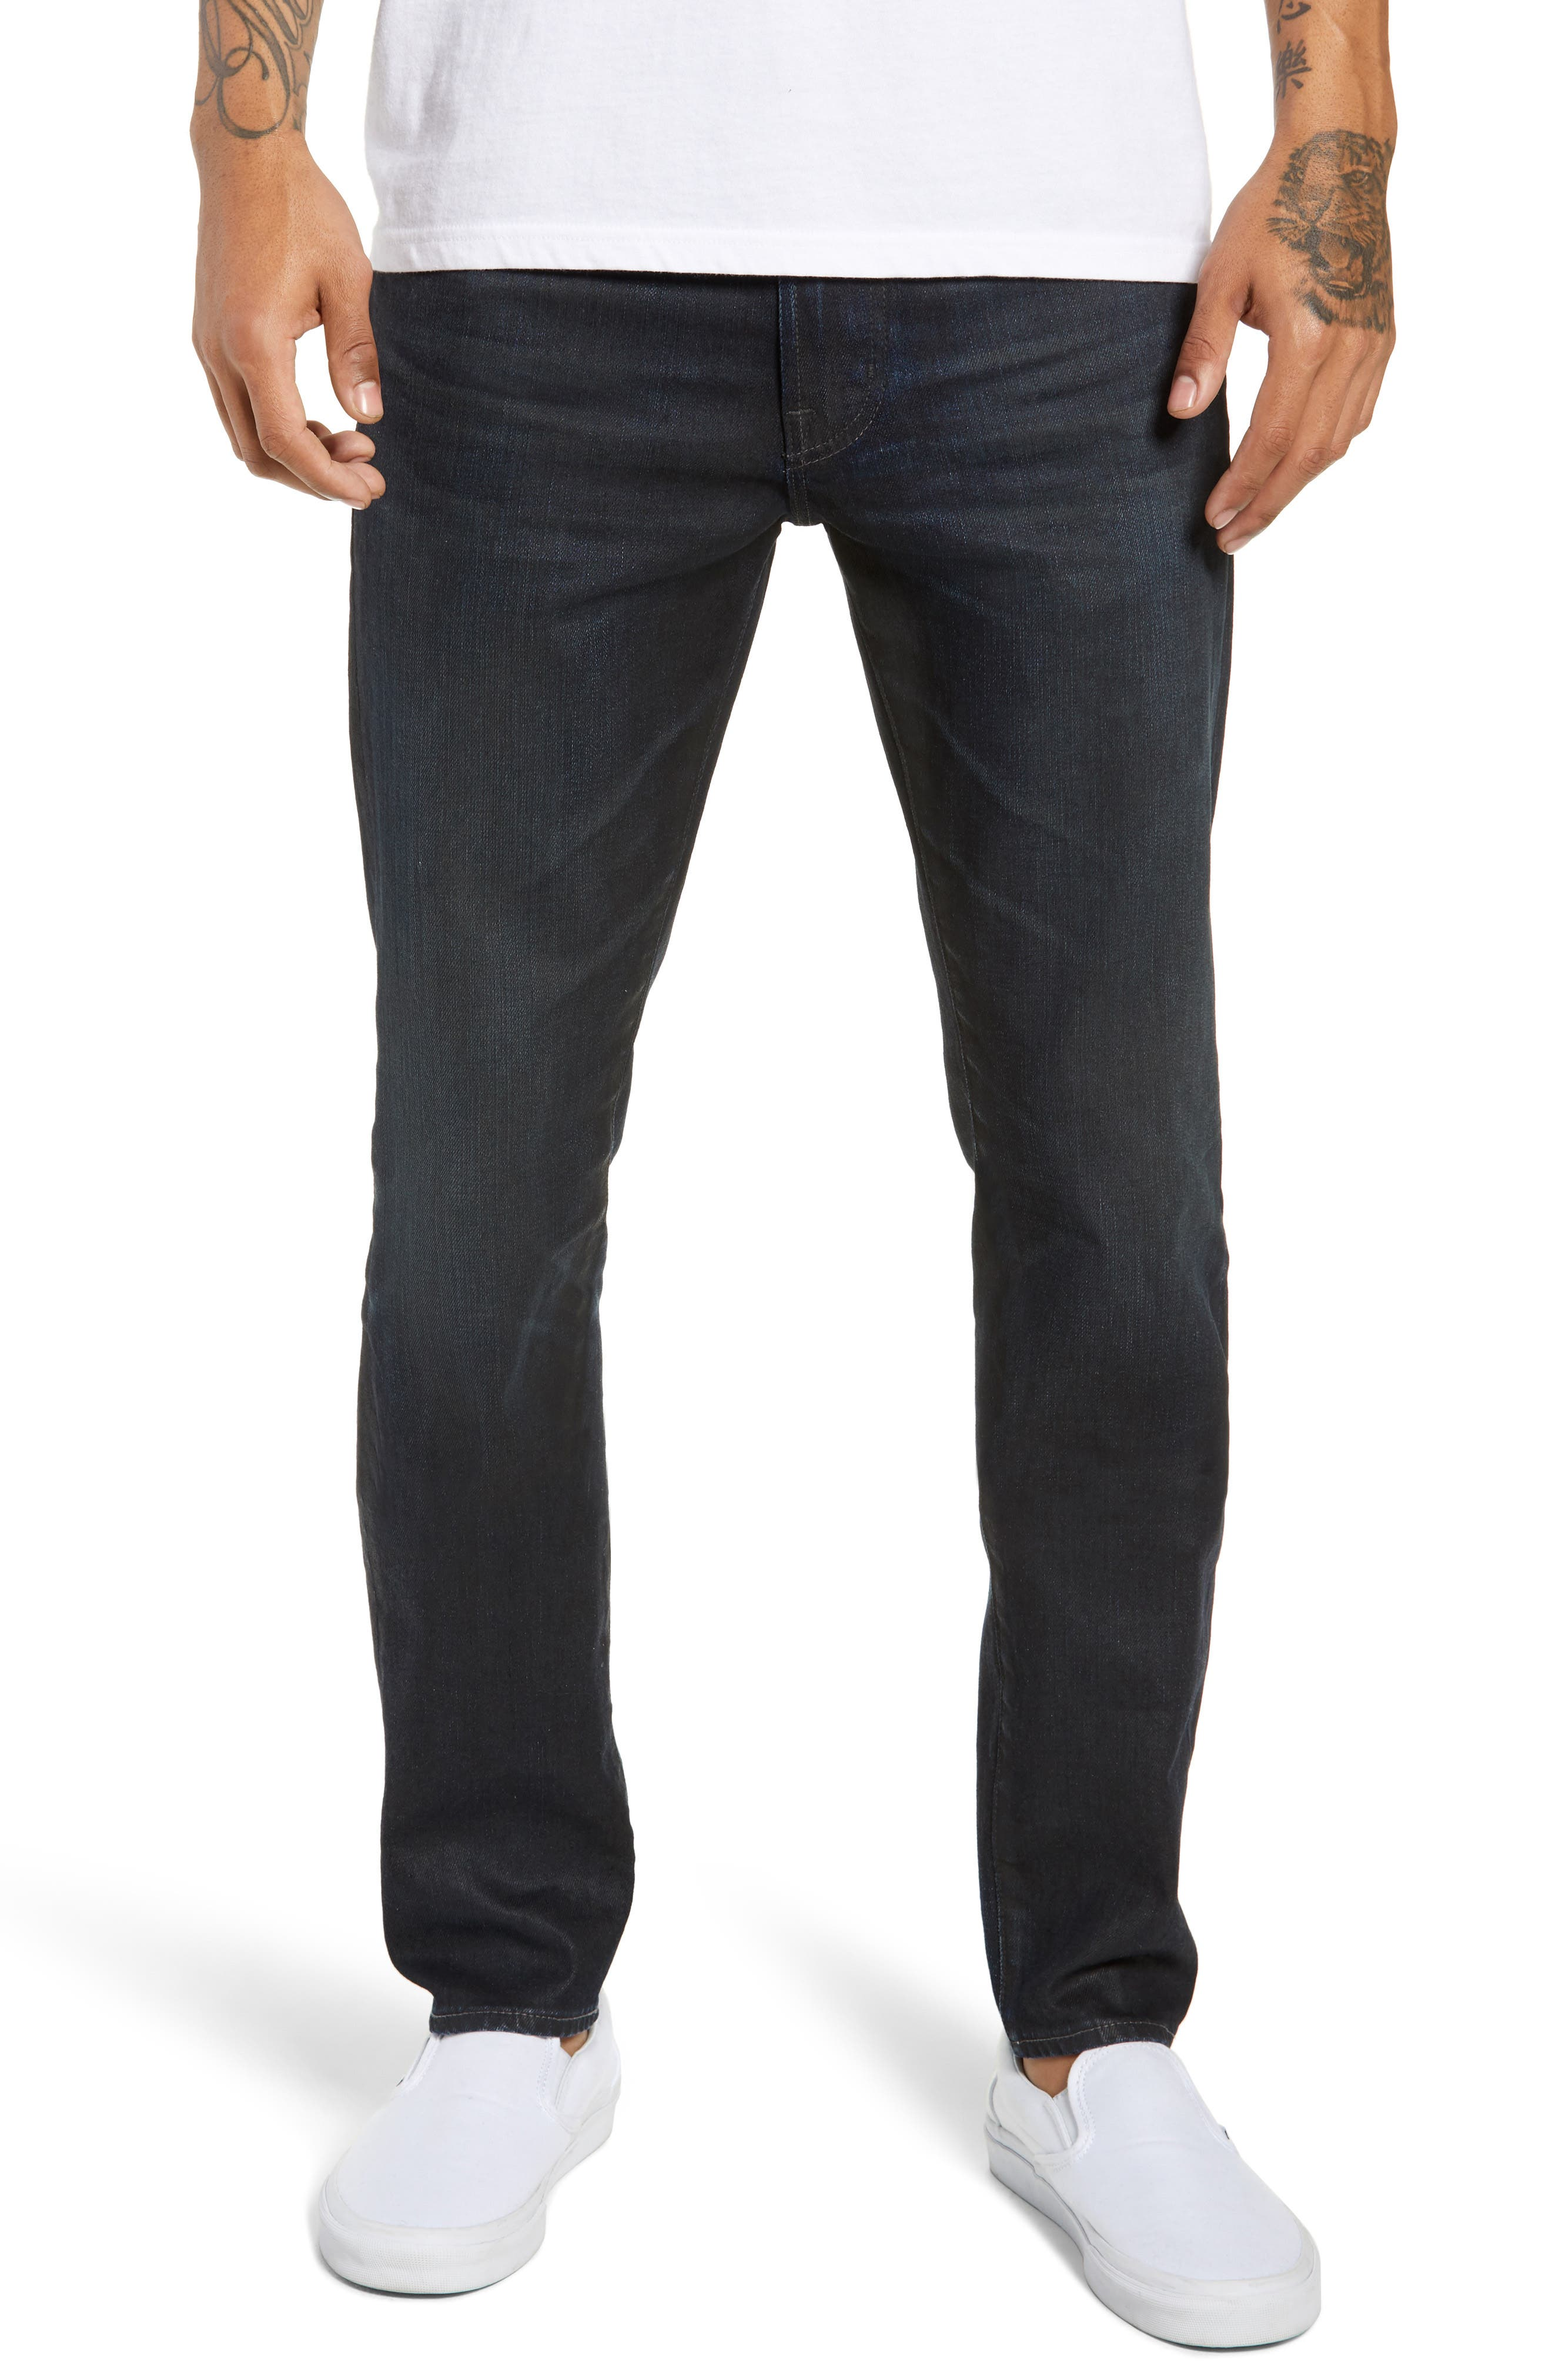 Dylan Skinny Fit Jeans,                             Main thumbnail 1, color,                             477